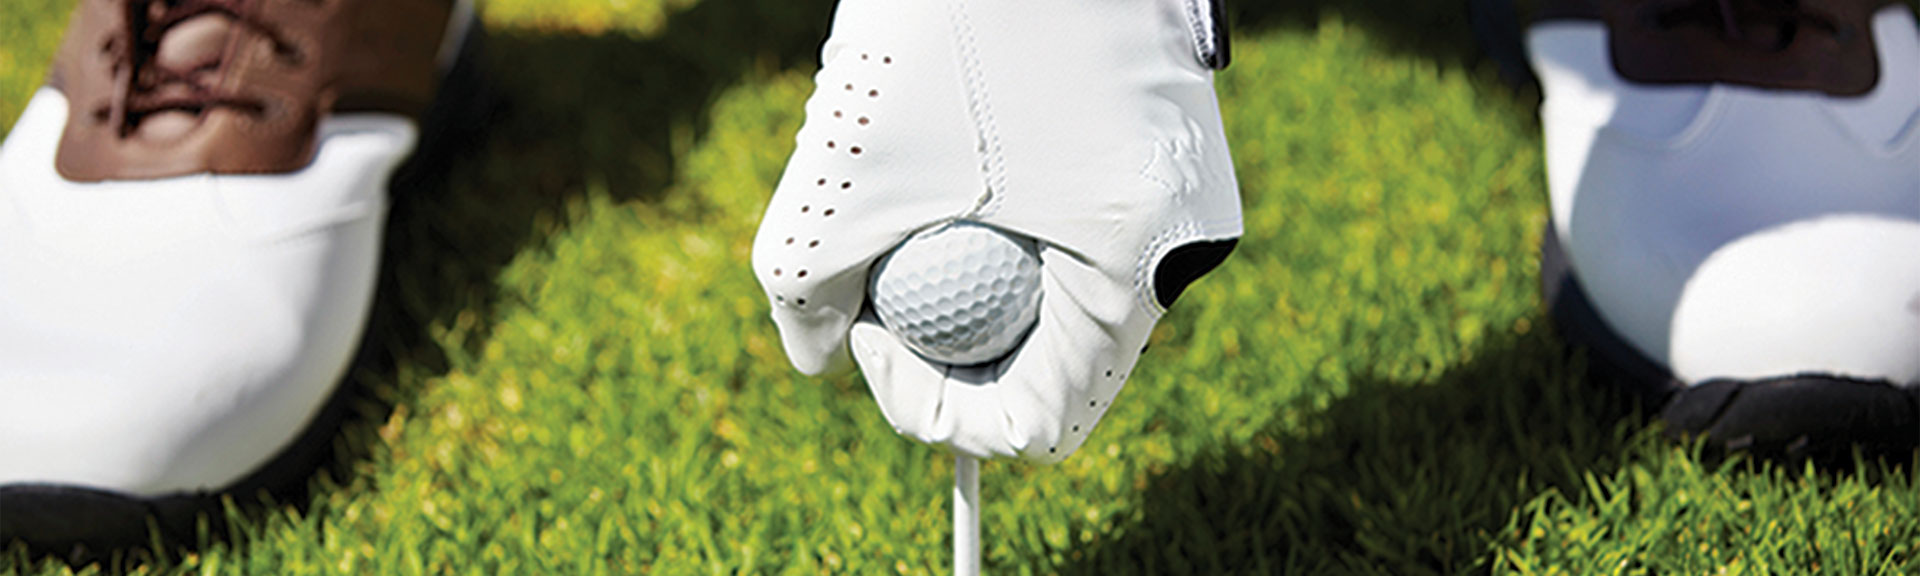 Market Category Page - Golf